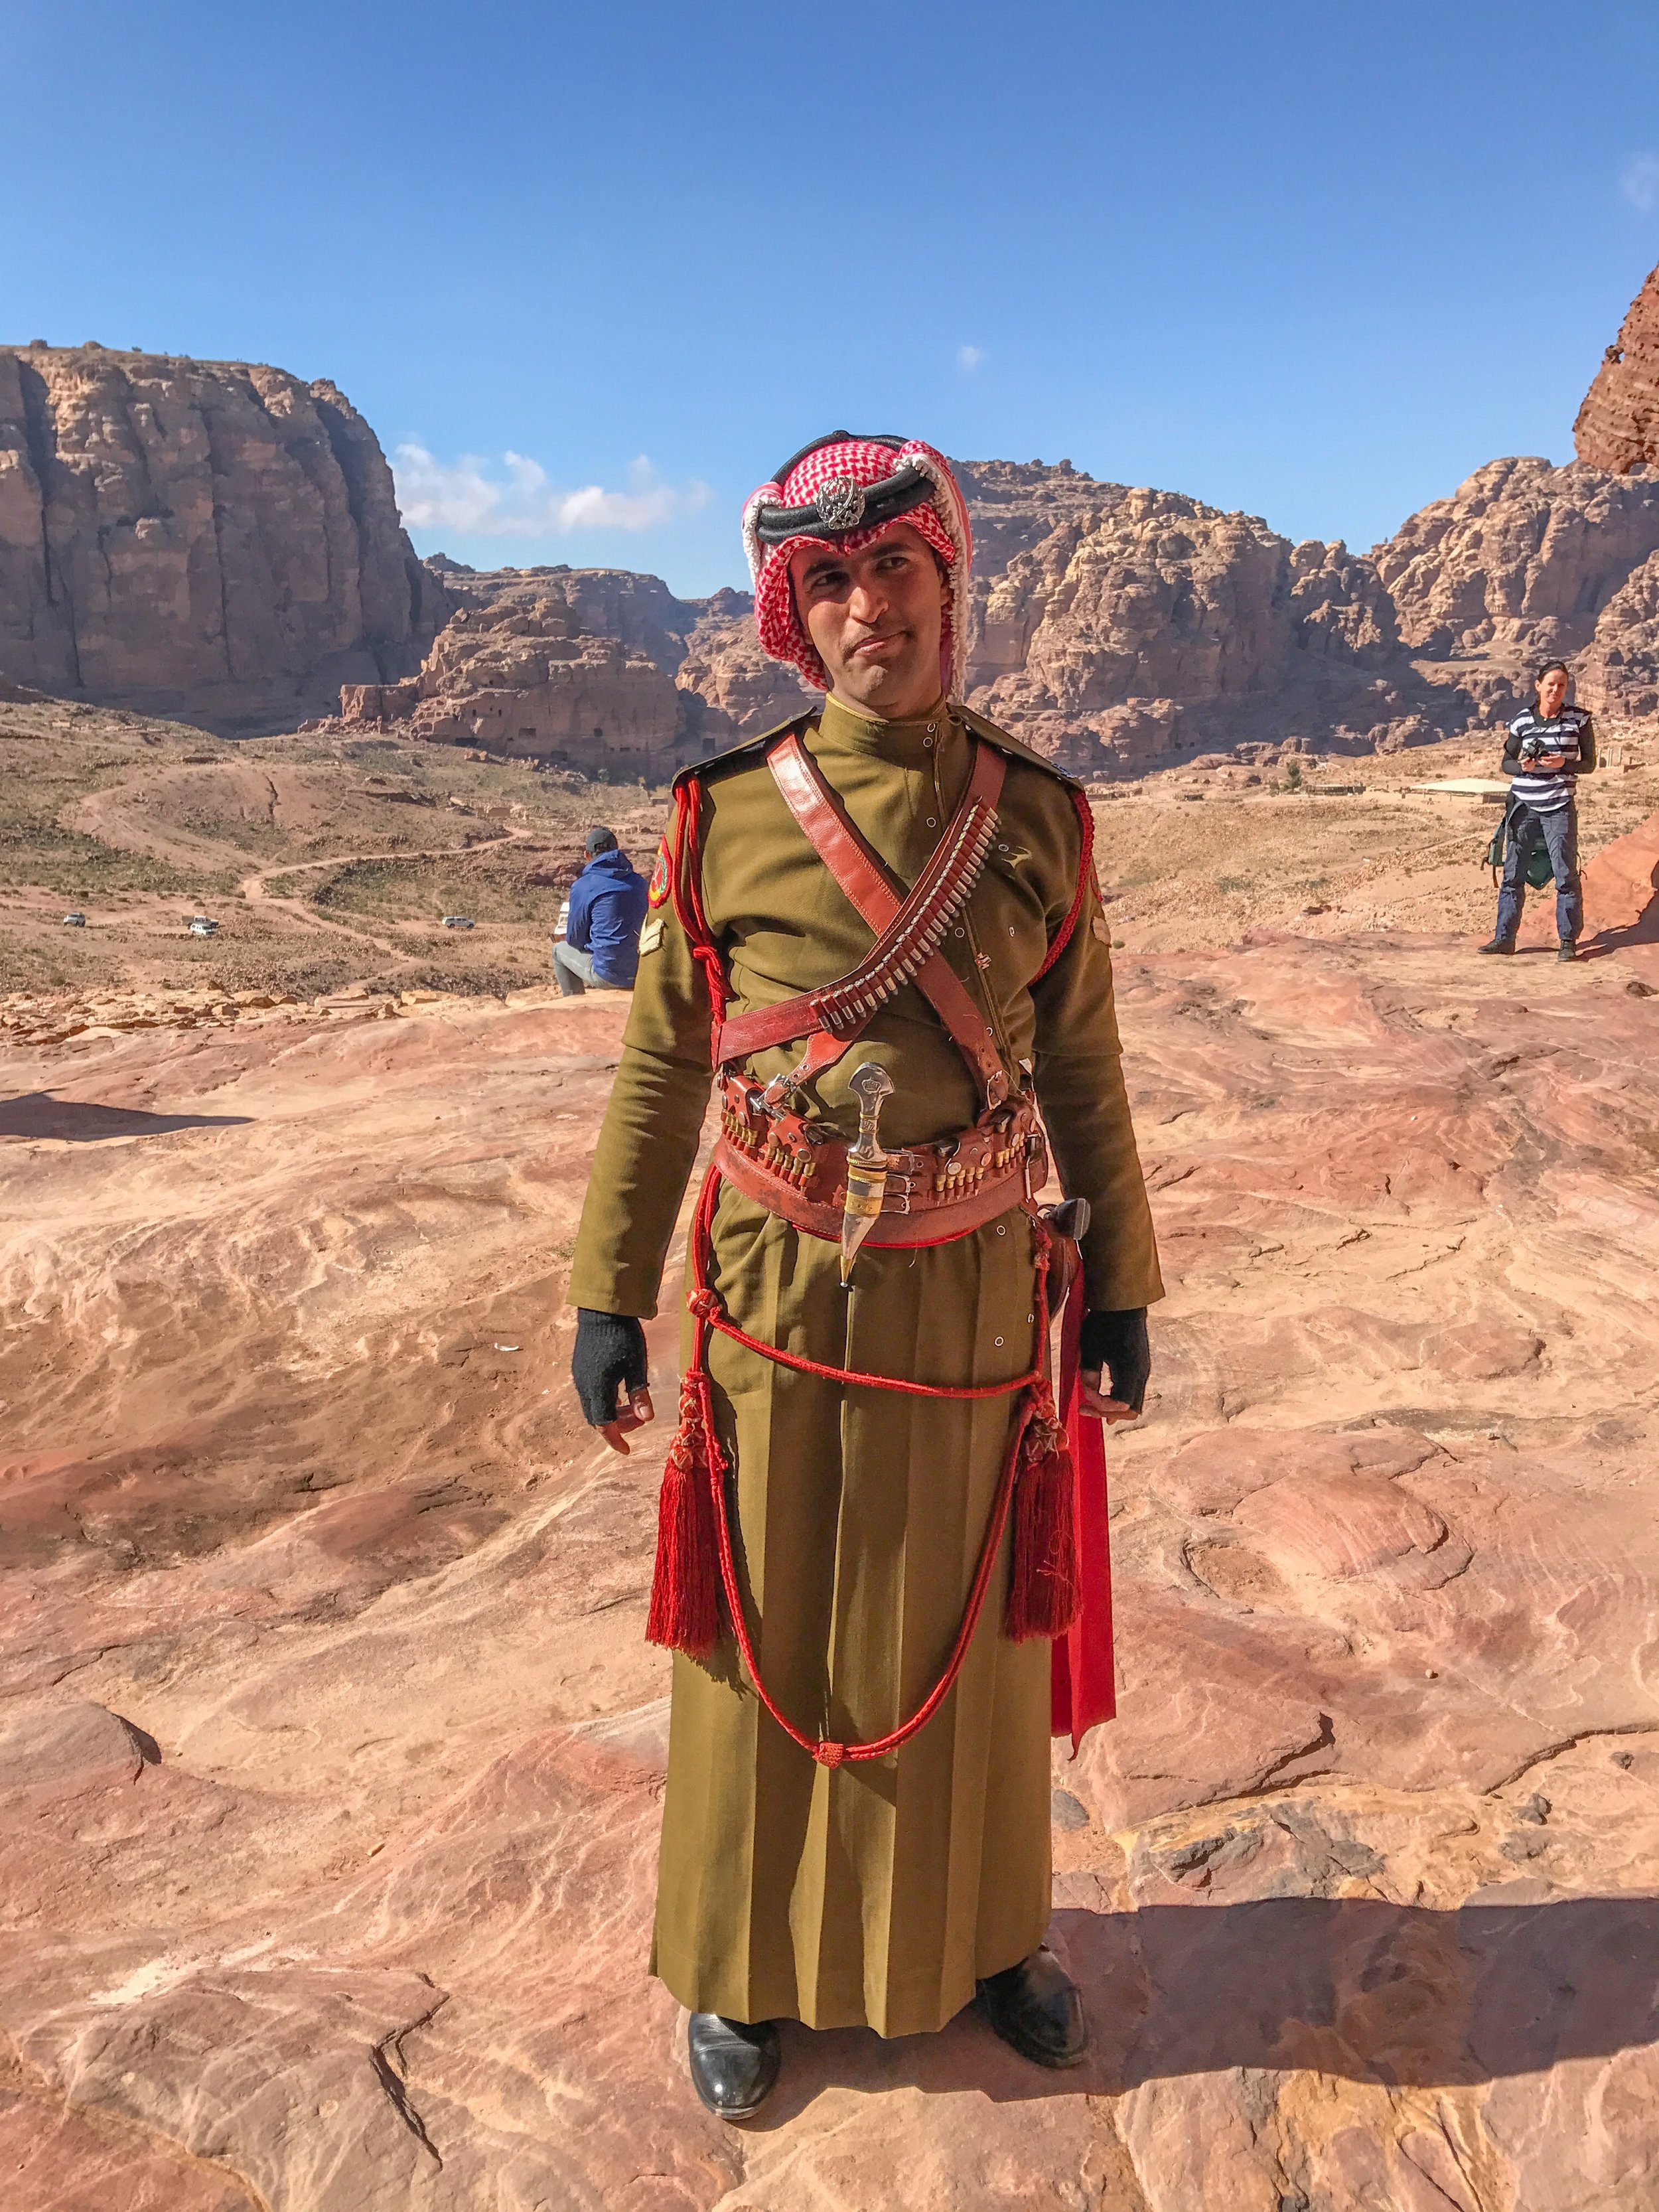 In general, Jordanian military and police can be trusted (though they may not be dressed in traditional uniforms like this)